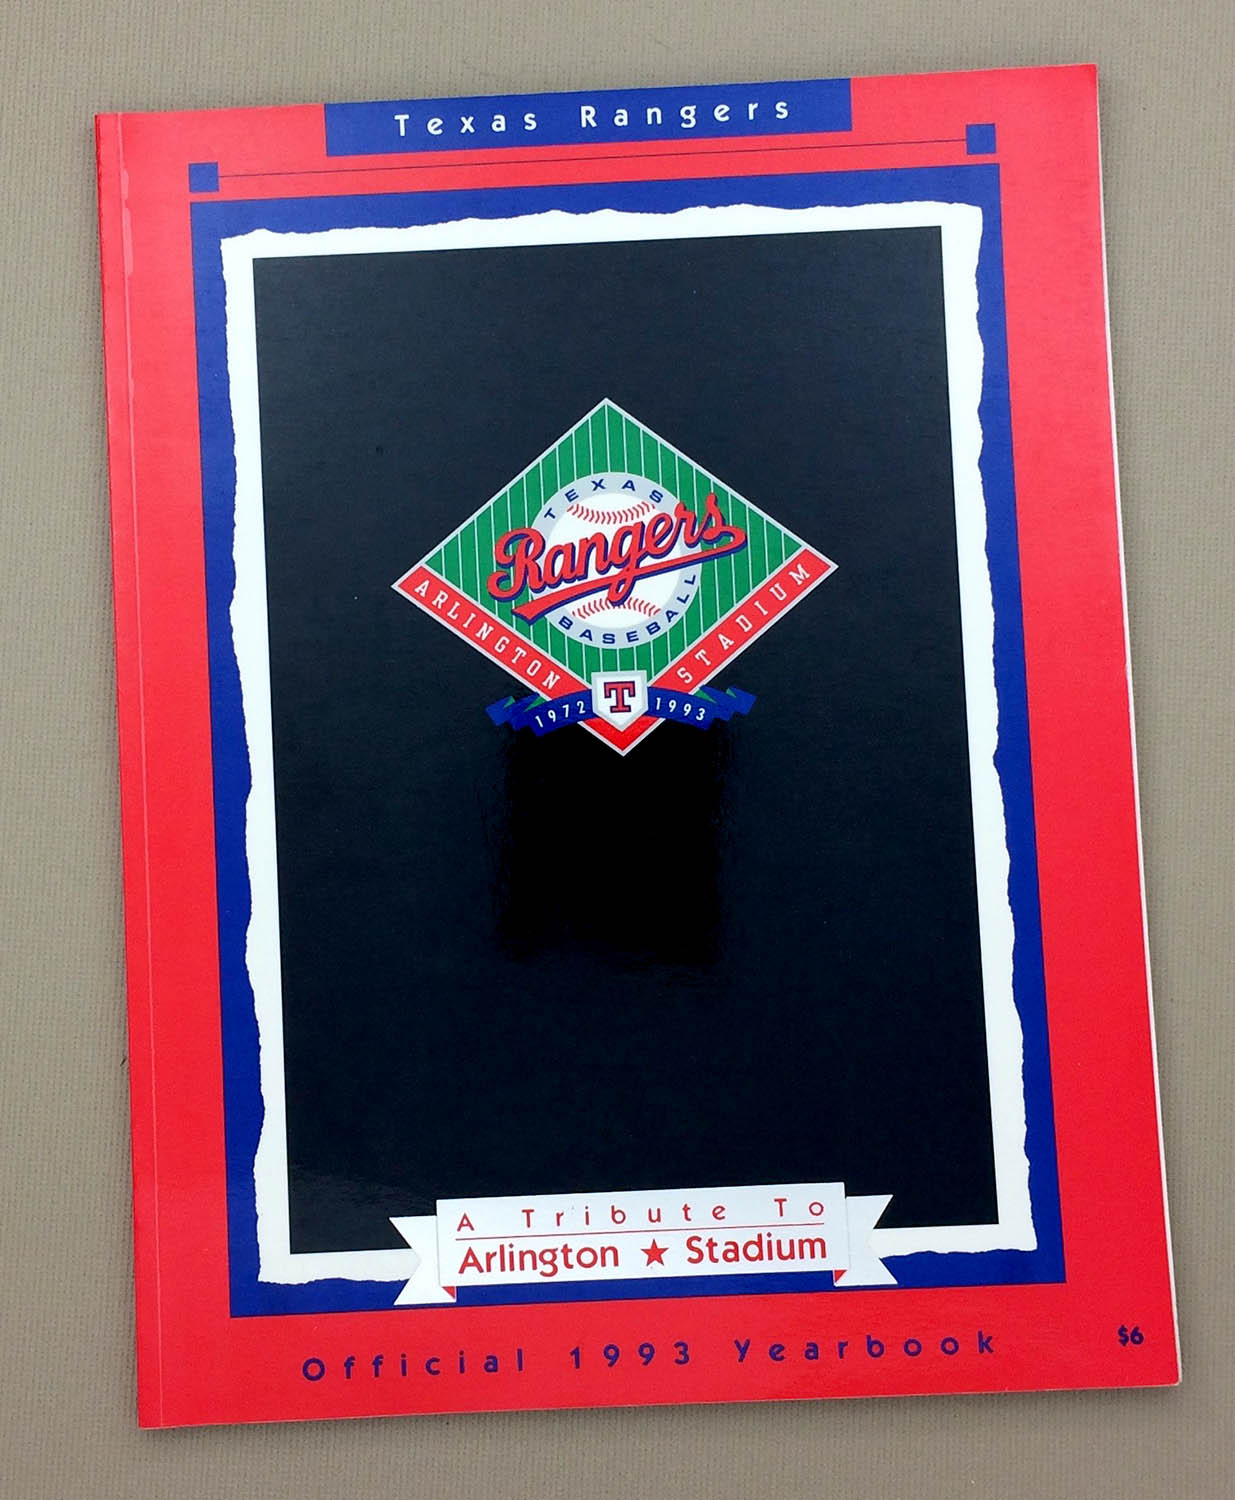 Texas Rangers 1993 Yearbook